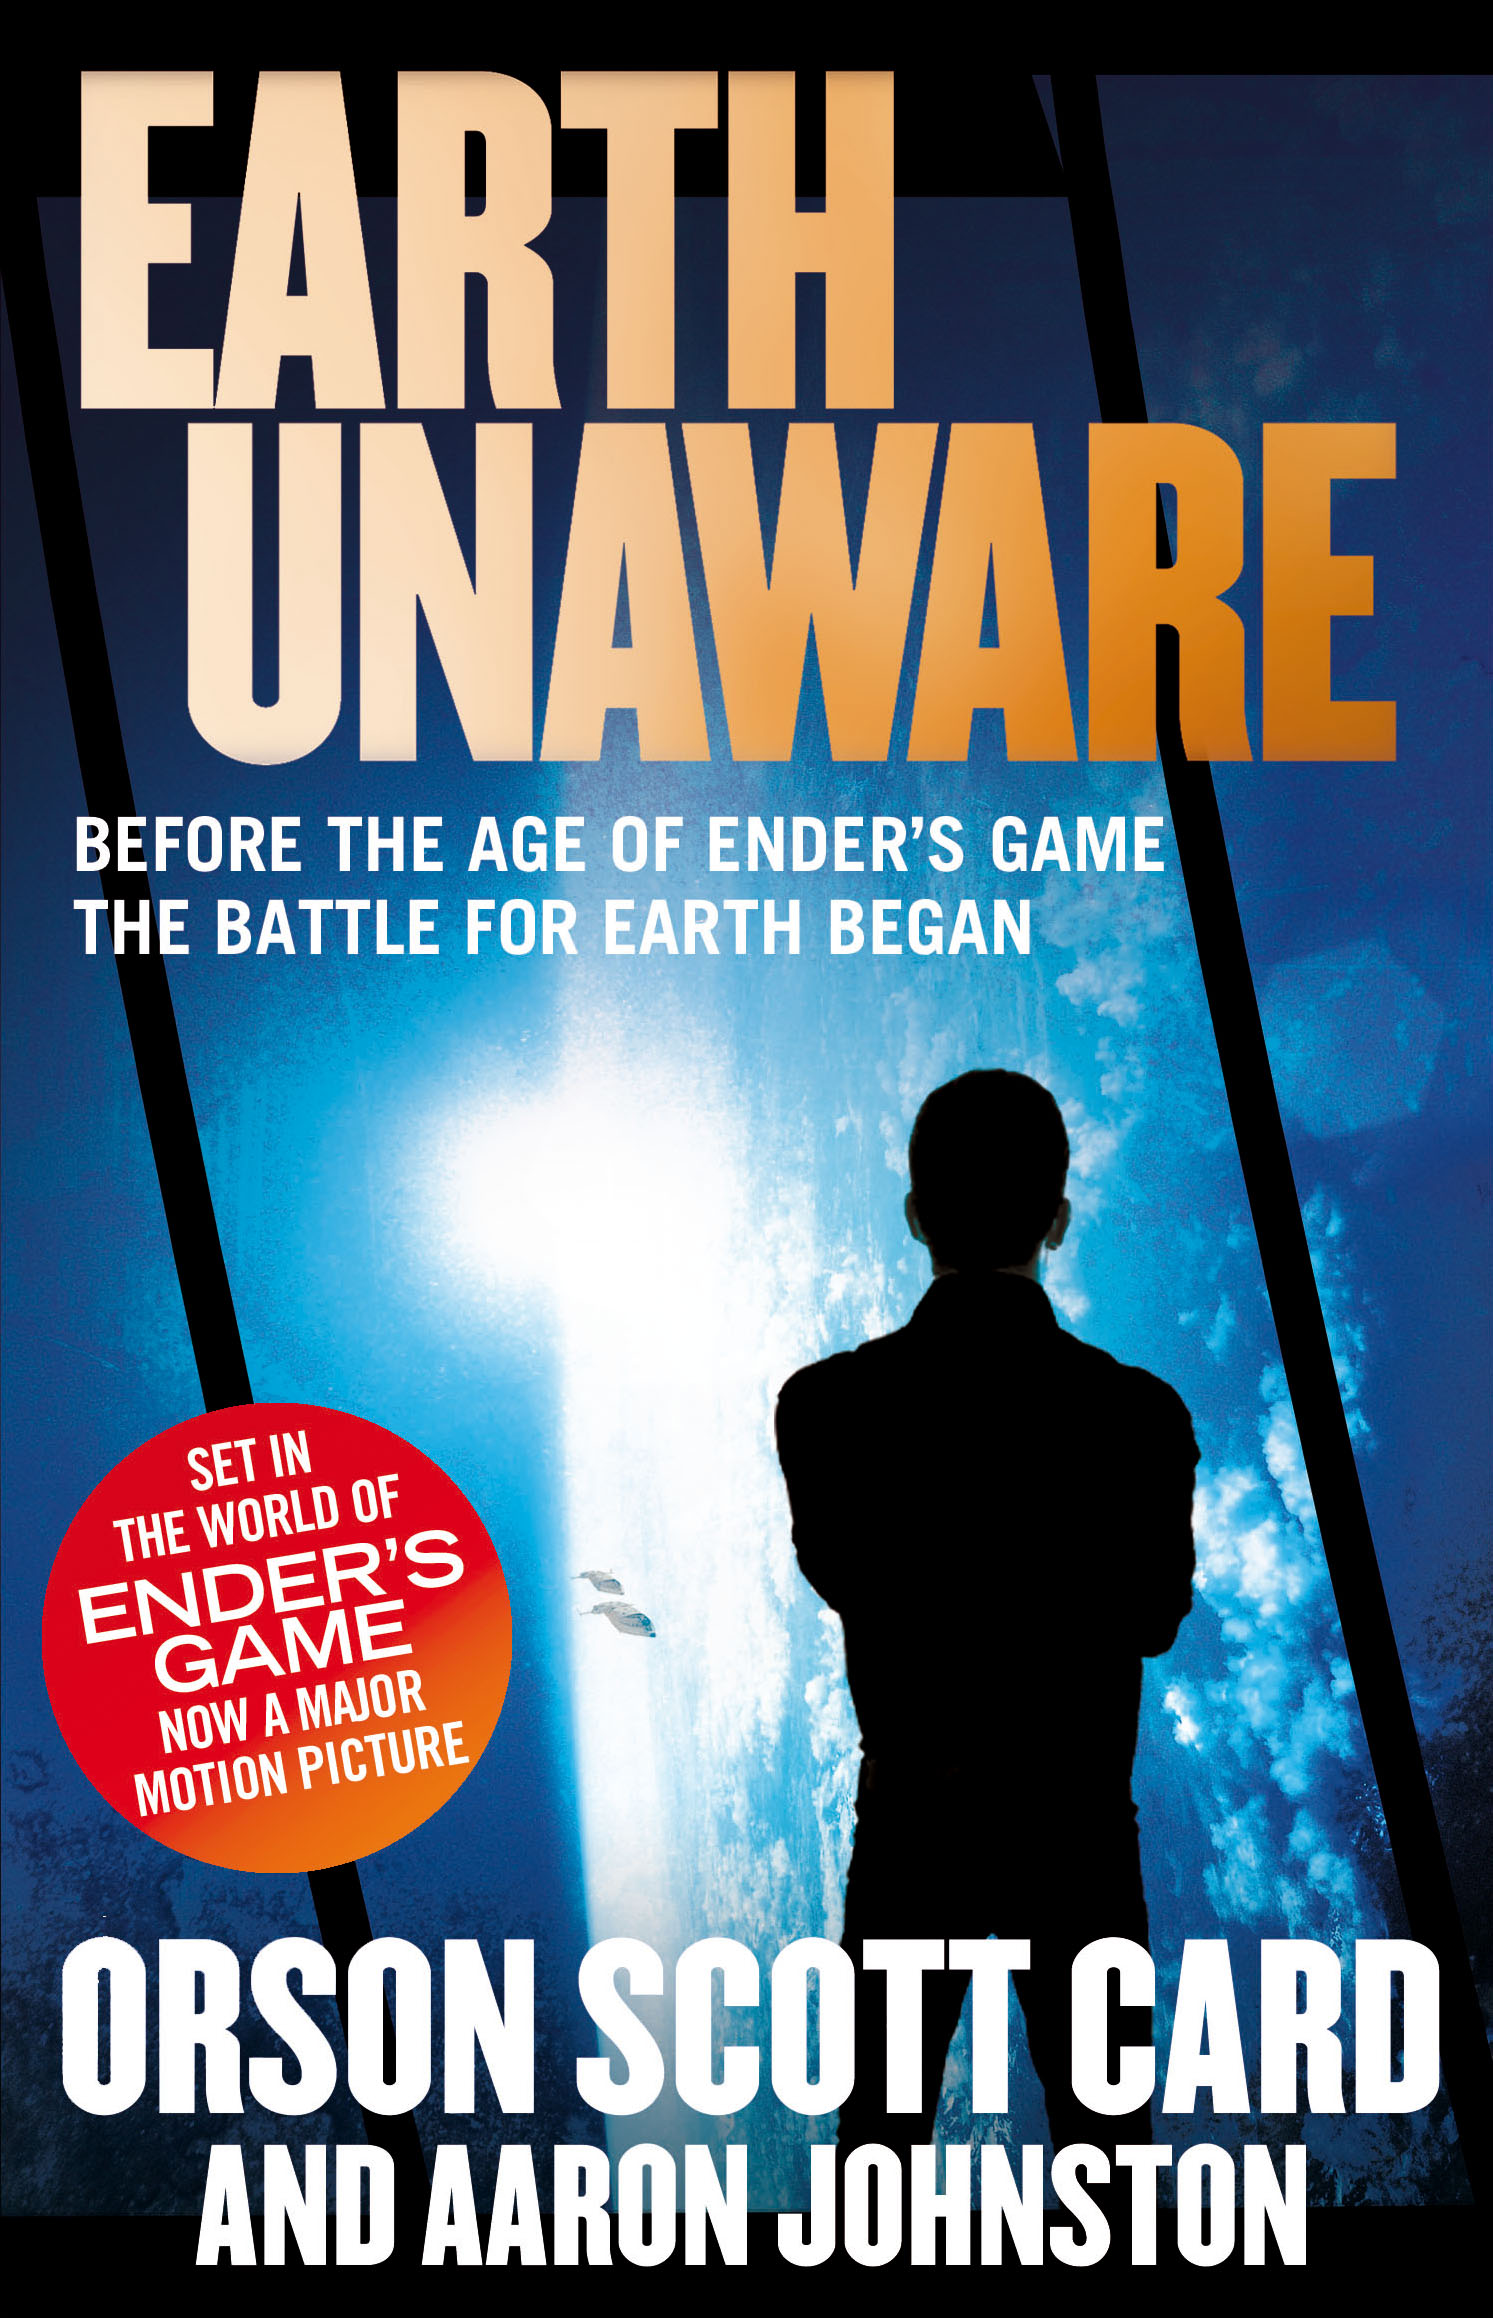 EARTH UNAWARE, book one of the First Formic War, by Orson Scott Card and Aaron Johnston, set 100 years before Ender's Game, which will be released as a major motion picture in October 2013 starring Harrison Ford